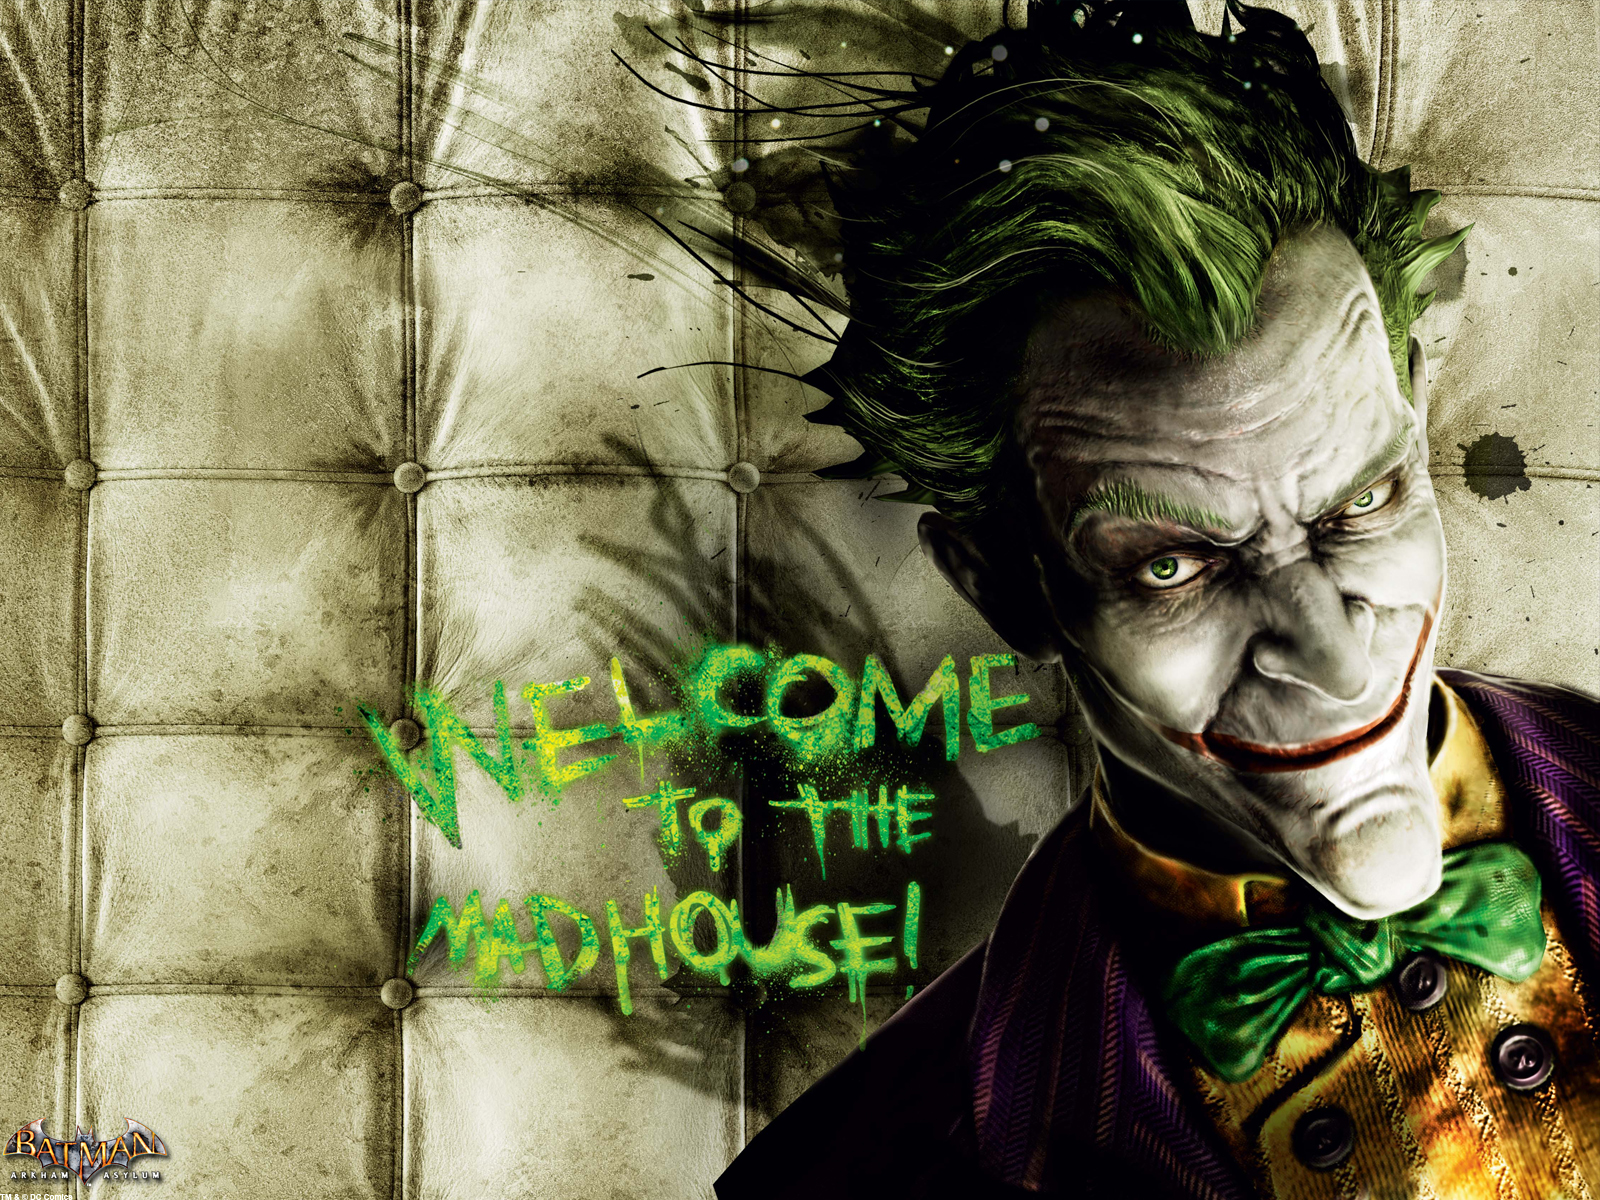 Batman Arkham Asylum Joker Wallpapers Other Games Wallpapers Res 1600x1200